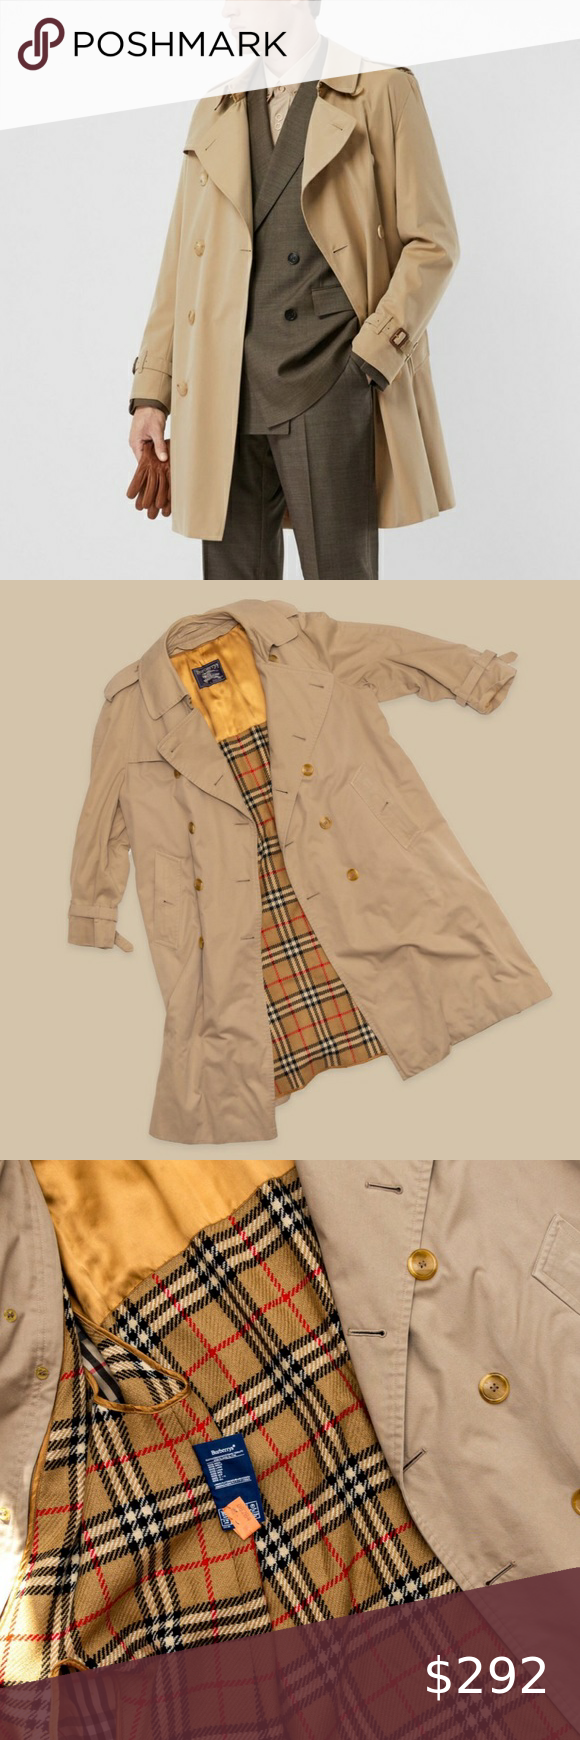 Burberry Men S Vintage Trench Coat Burberry Vintage Tan Trench Coat Condition Used But Good Size L Burberry Jackets Coa Trench Coat Vintage Coat Fashion